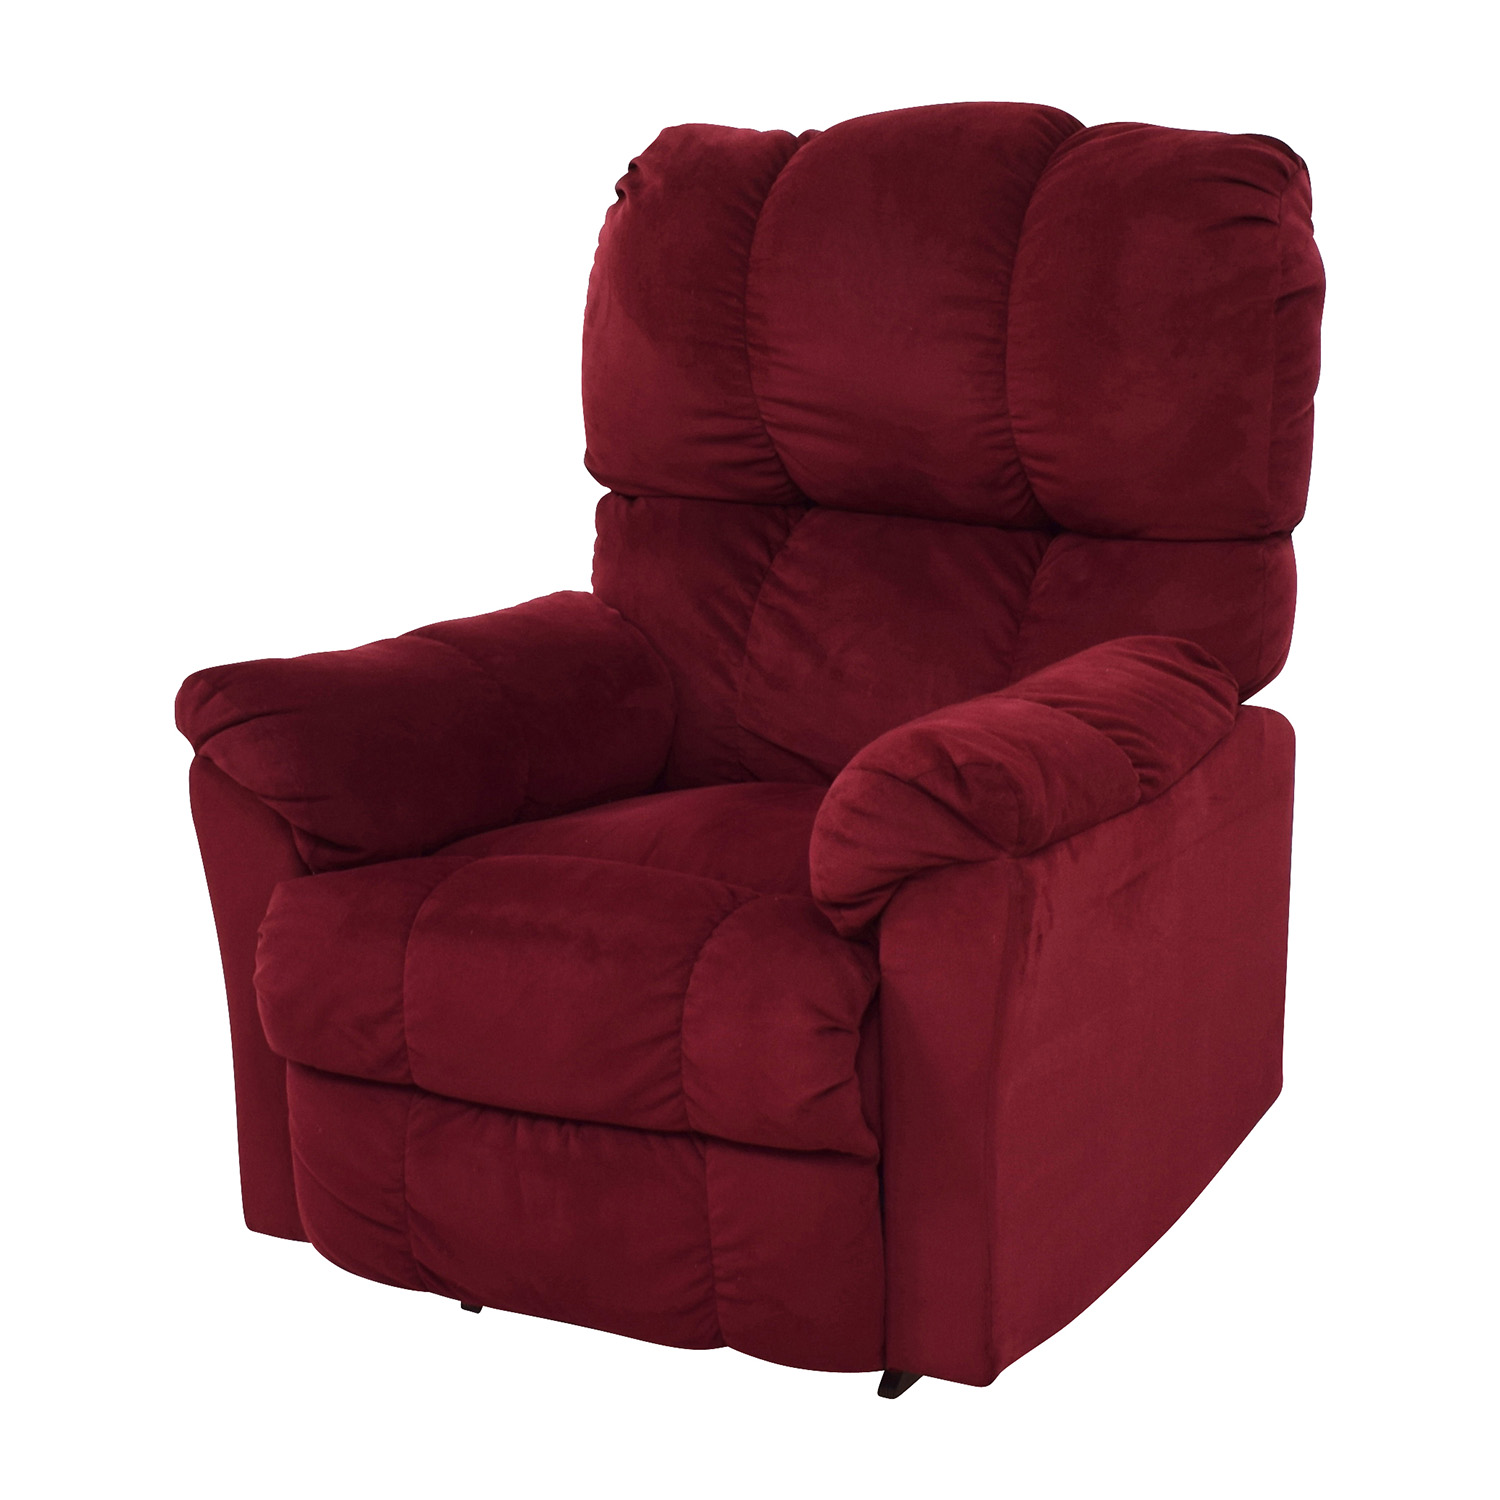 Macys Red Recliner Arm Chair sale